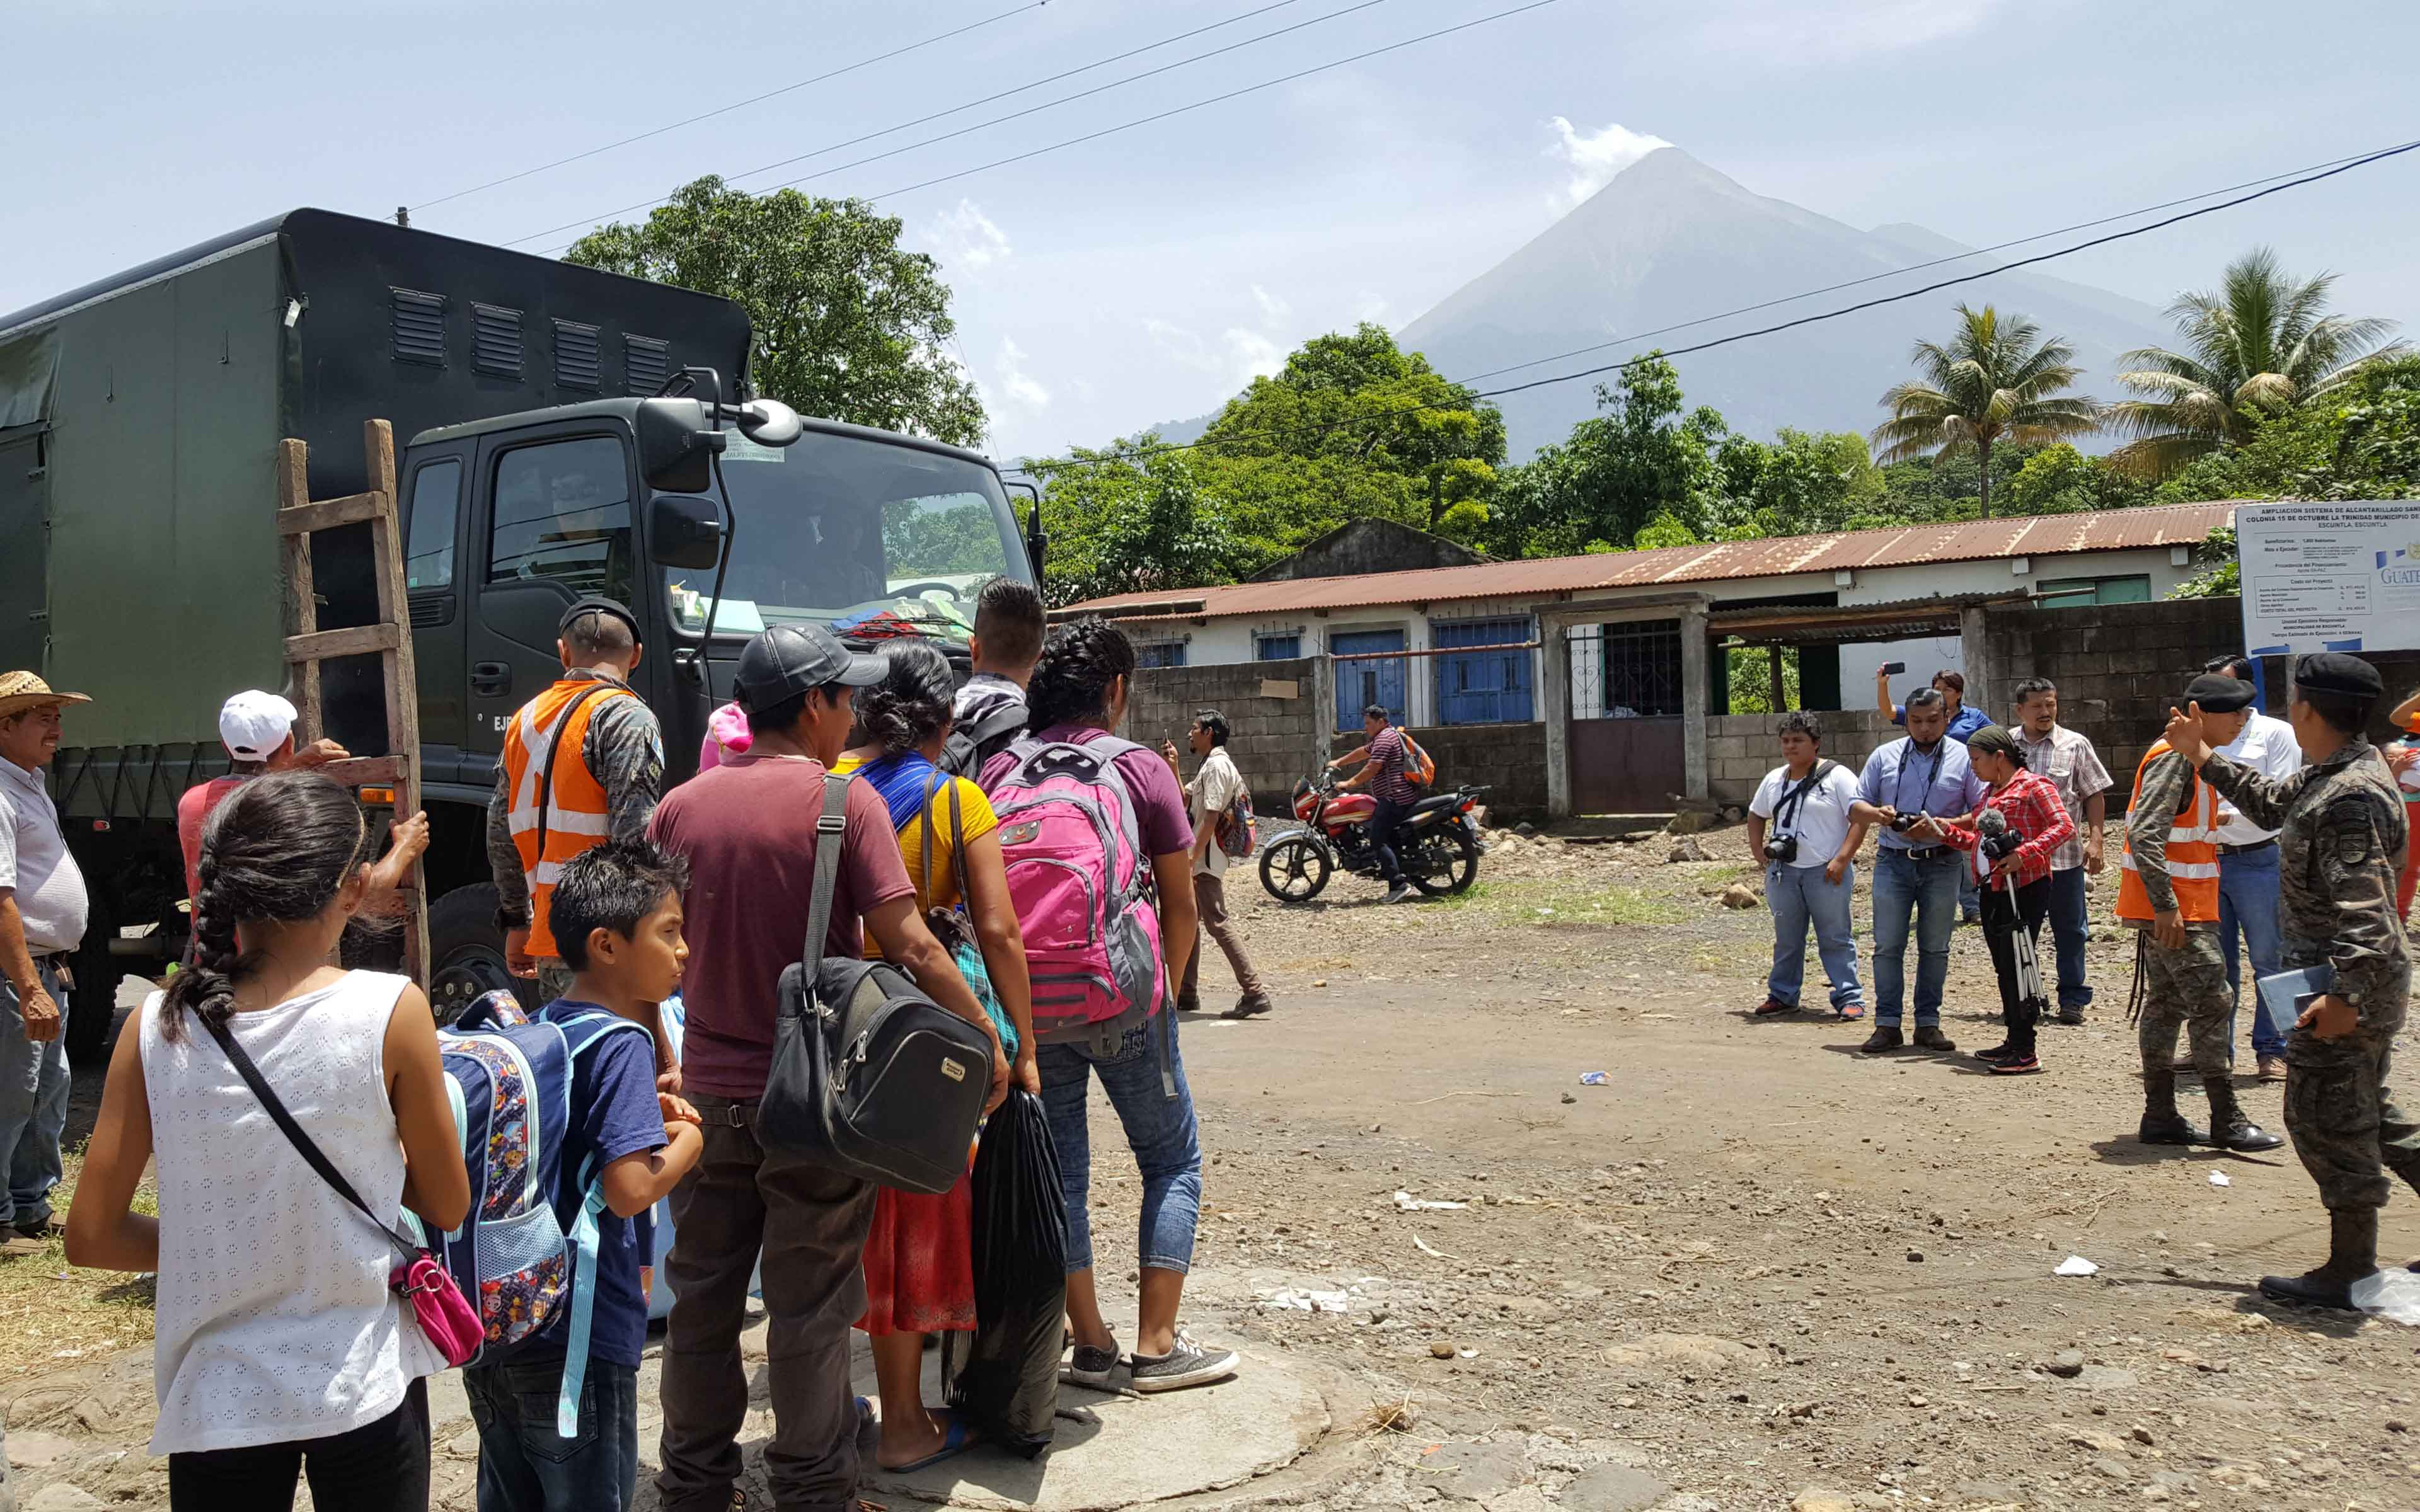 As steam blows out of the top of Fuego in the background, community members of La Trinidad prepare to board army trucks that will evacuate them to temporary shelter in the nearby city of Escuintla.